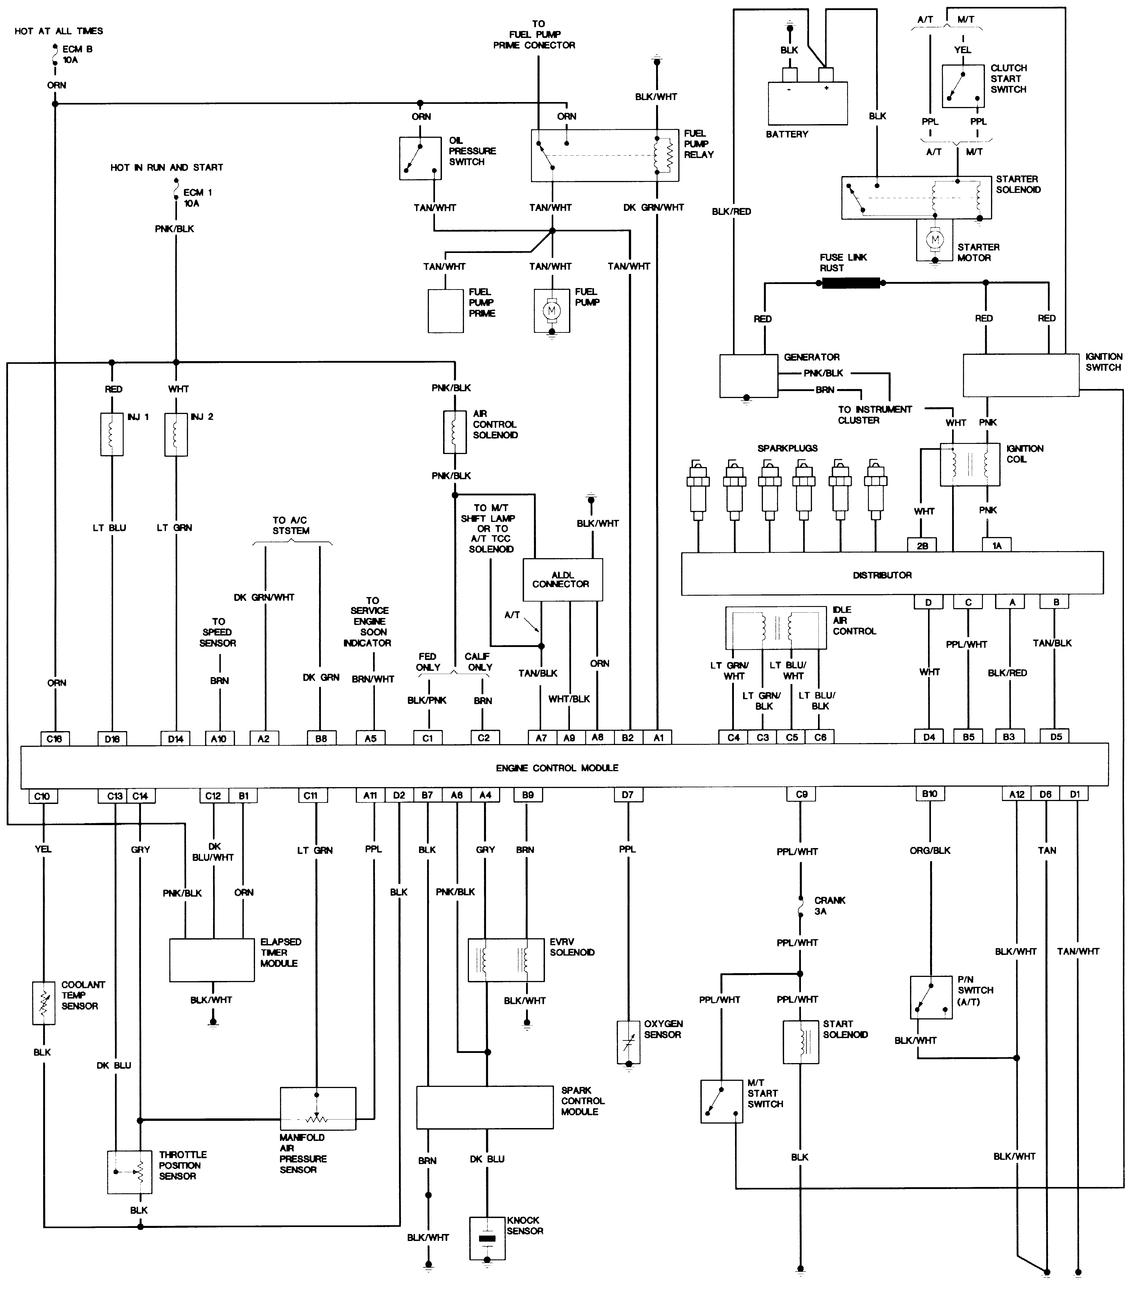 Putting A V8 In 1987 S10 Carbureted Motor With Th350 Transmission Wiring Diagram 95507cea 9cea 4252 8a11 E93b085f35d1 85386213l